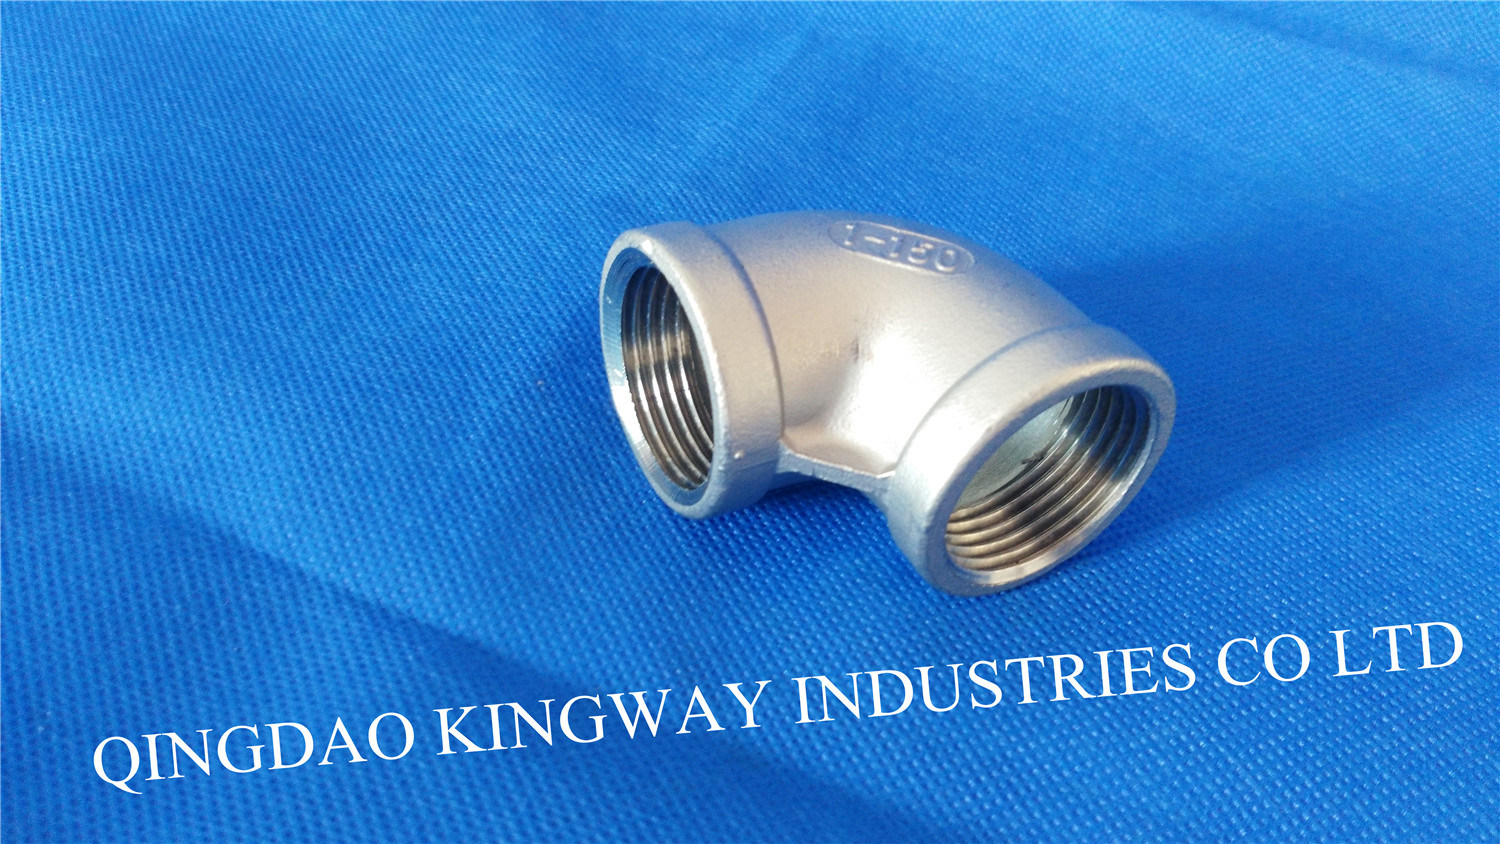 Stainless steel Elbow 90 (LB 90)